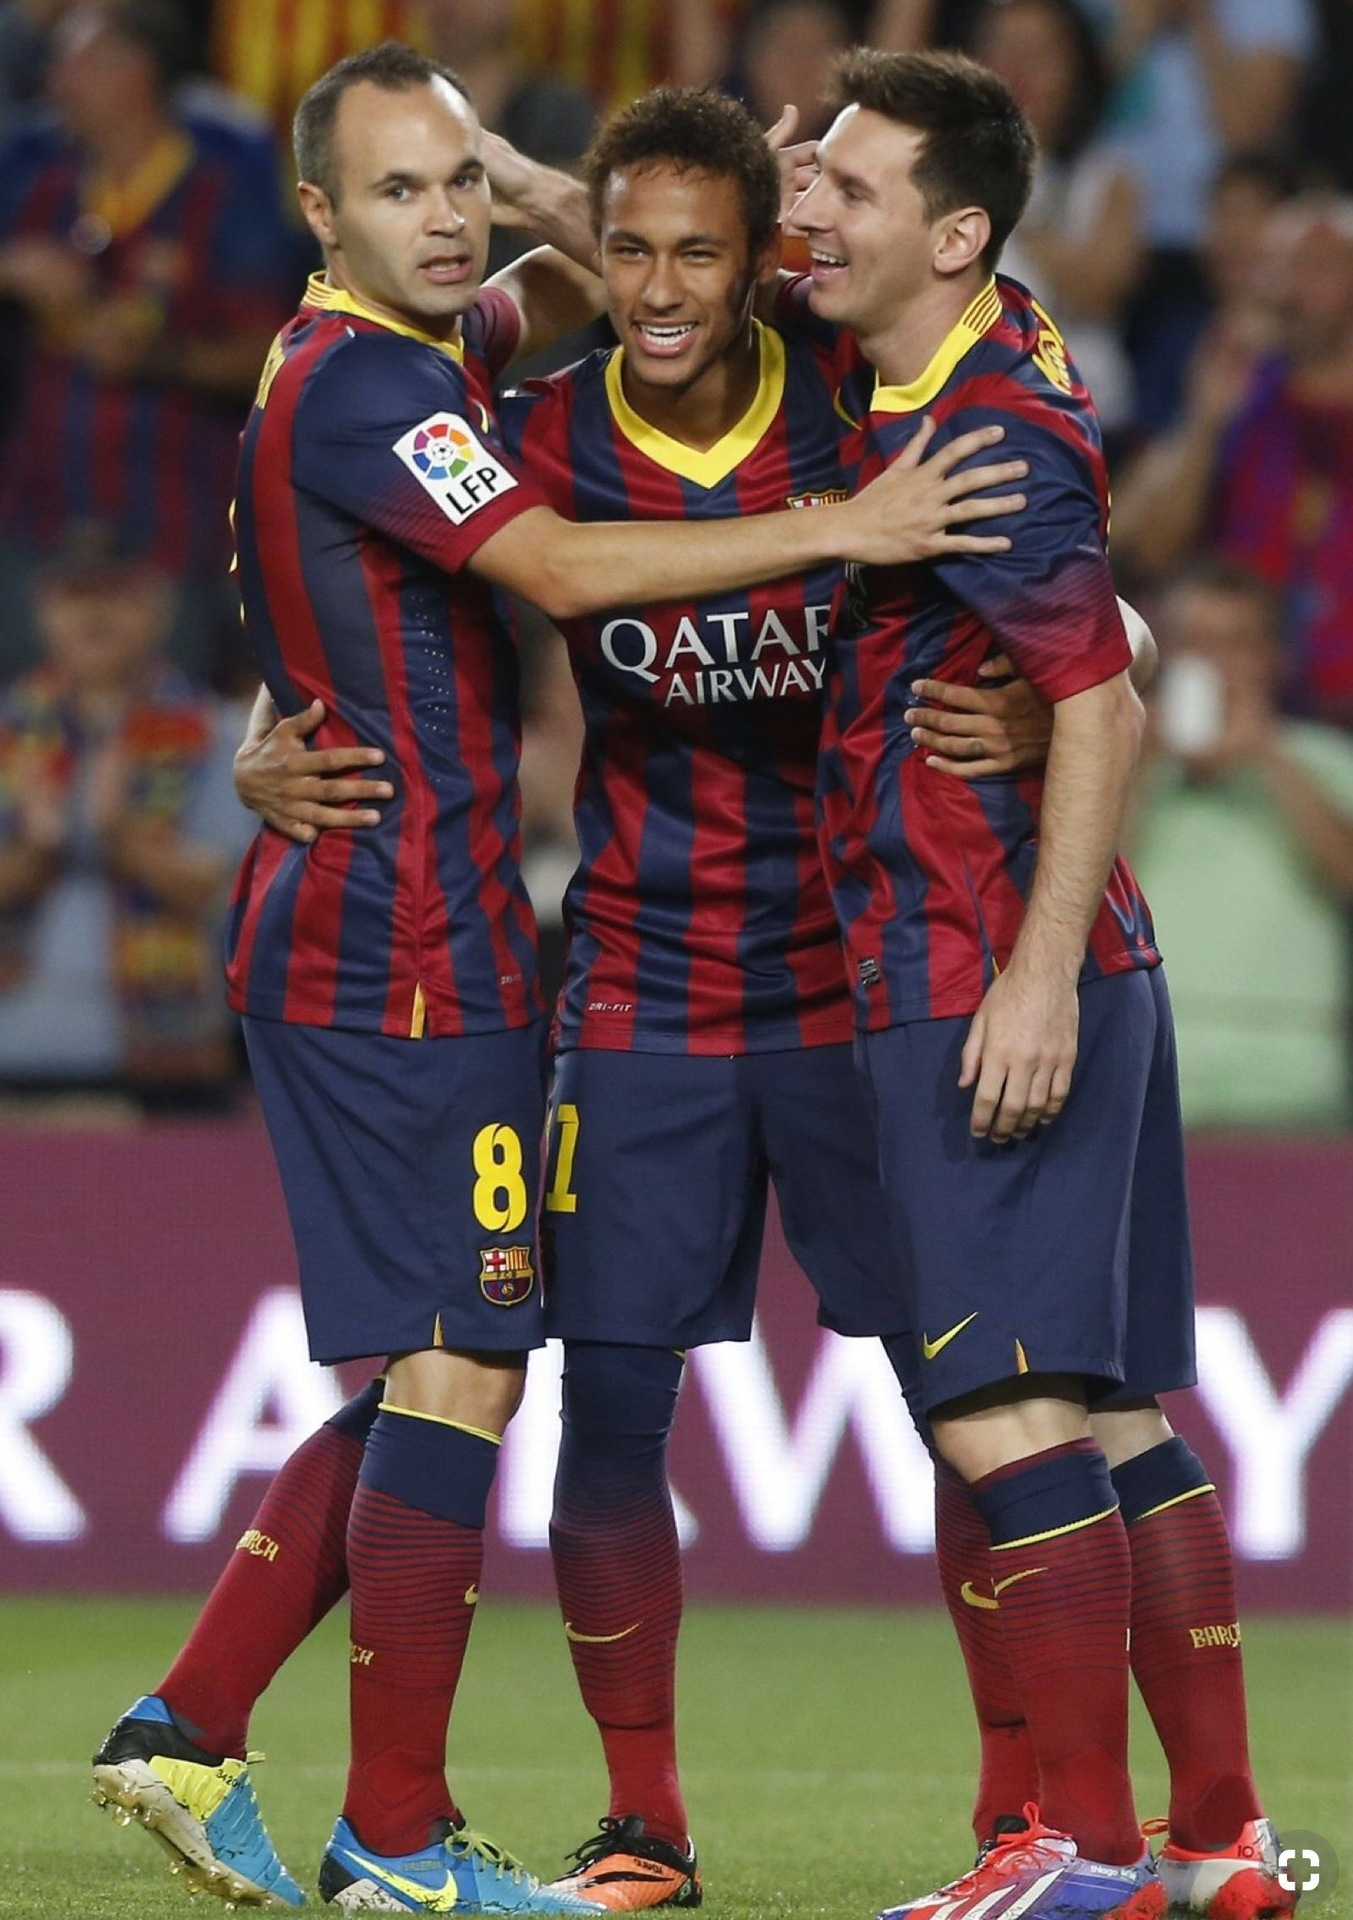 andres-iniesta-2013-14-barcelona-nike-home-kit-with-messi-and-neymar.jpg